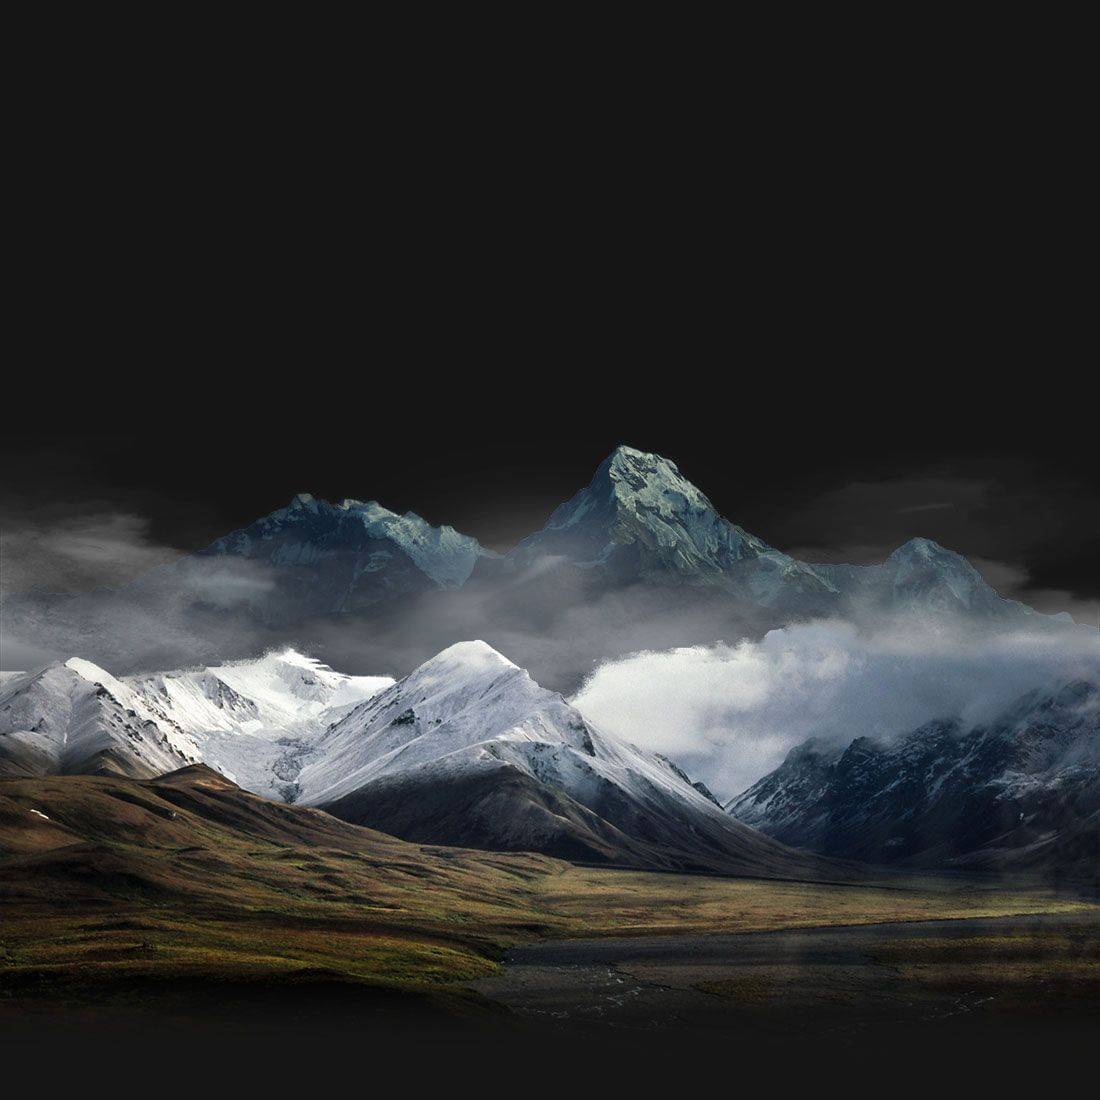 Grand landscape image with rolling hills and snowcapped mountains